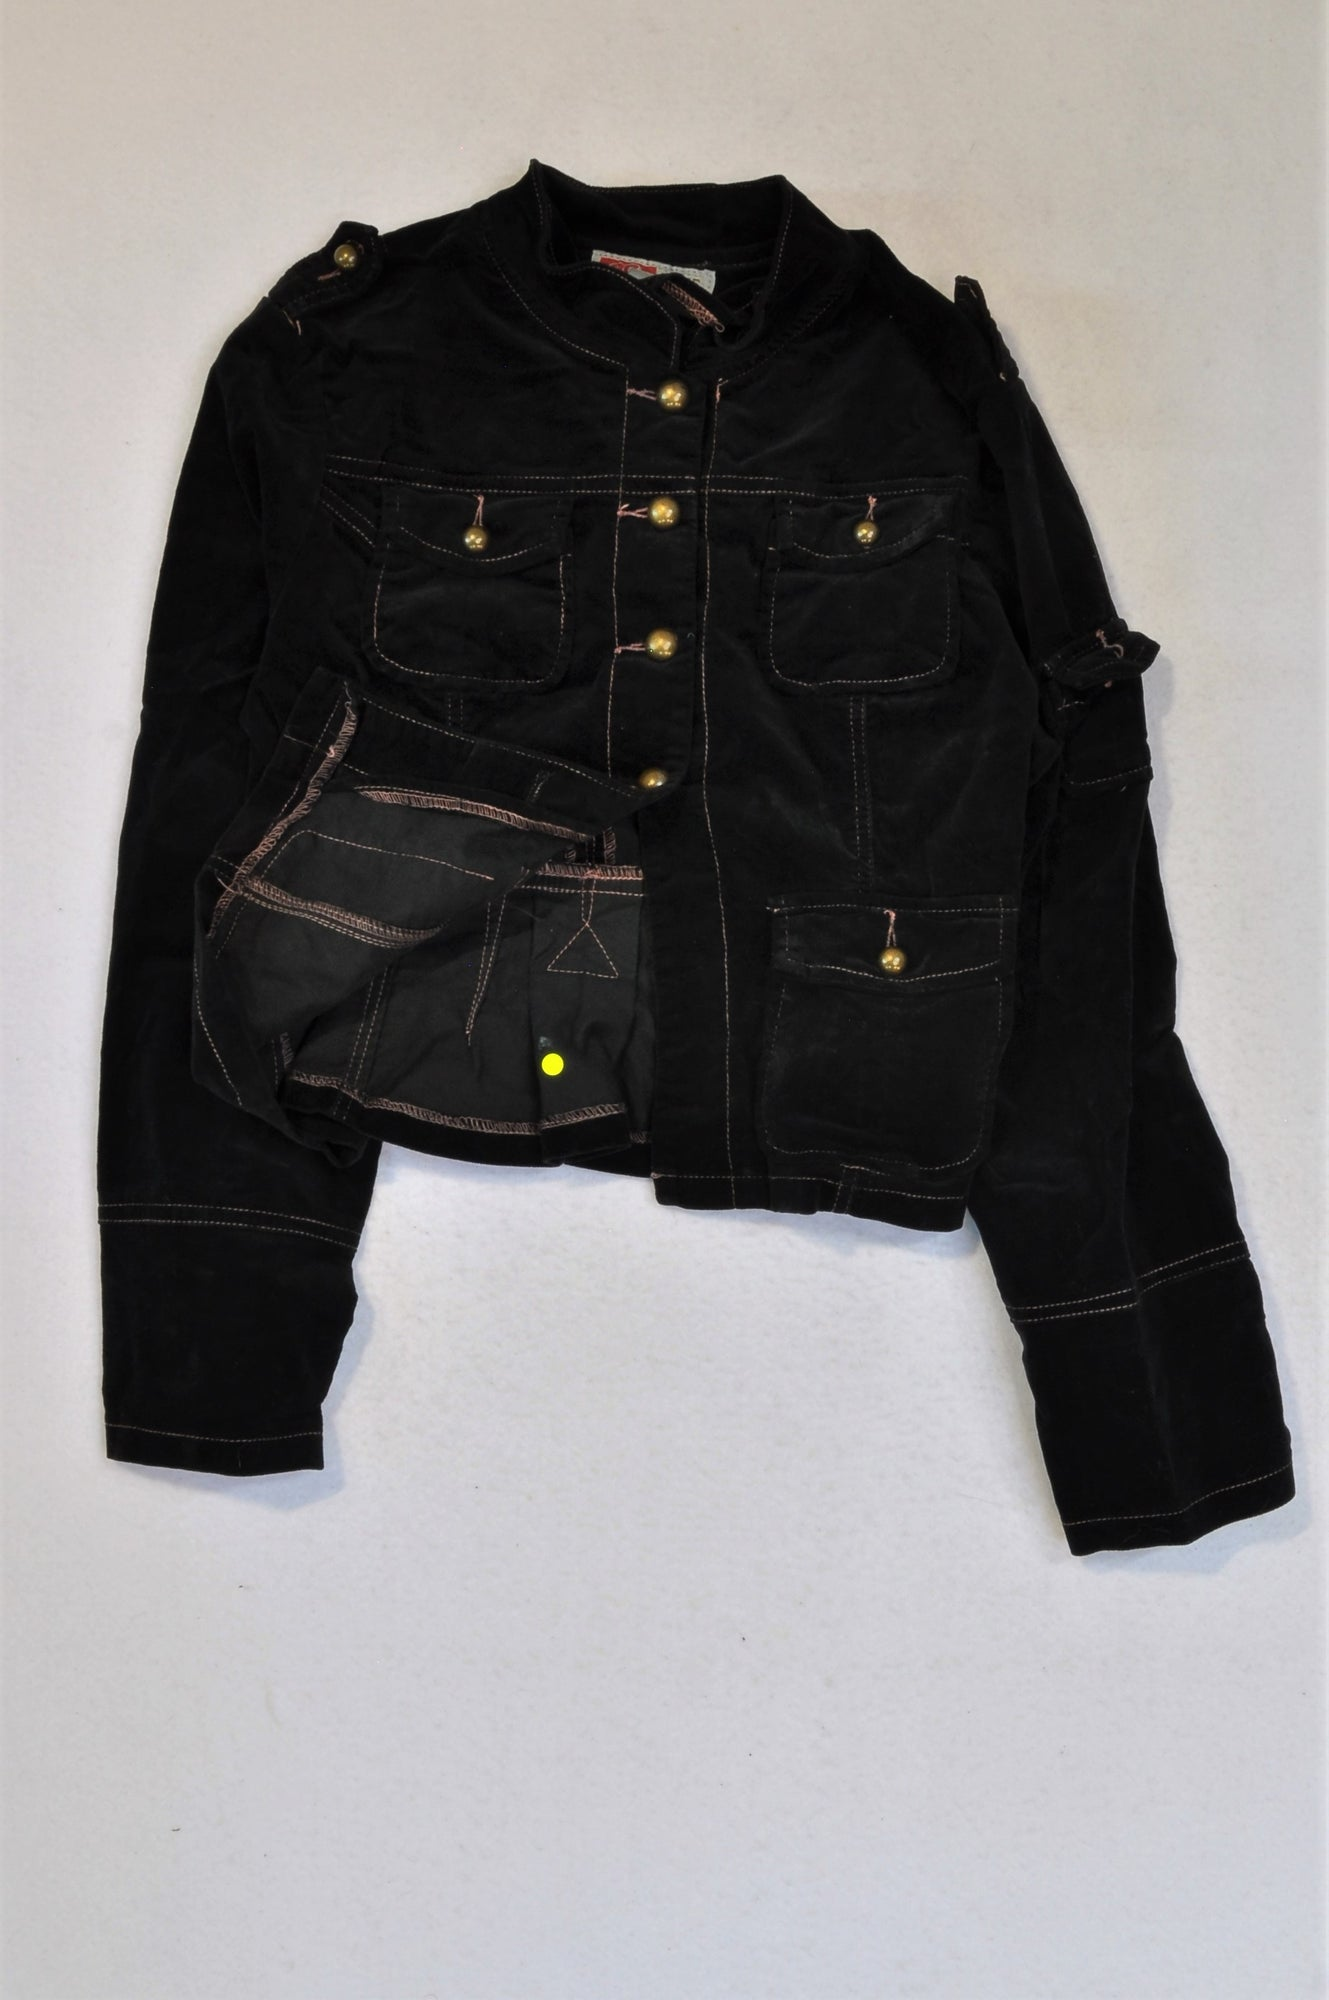 Caihe Black Jacket Girls 3-4 years